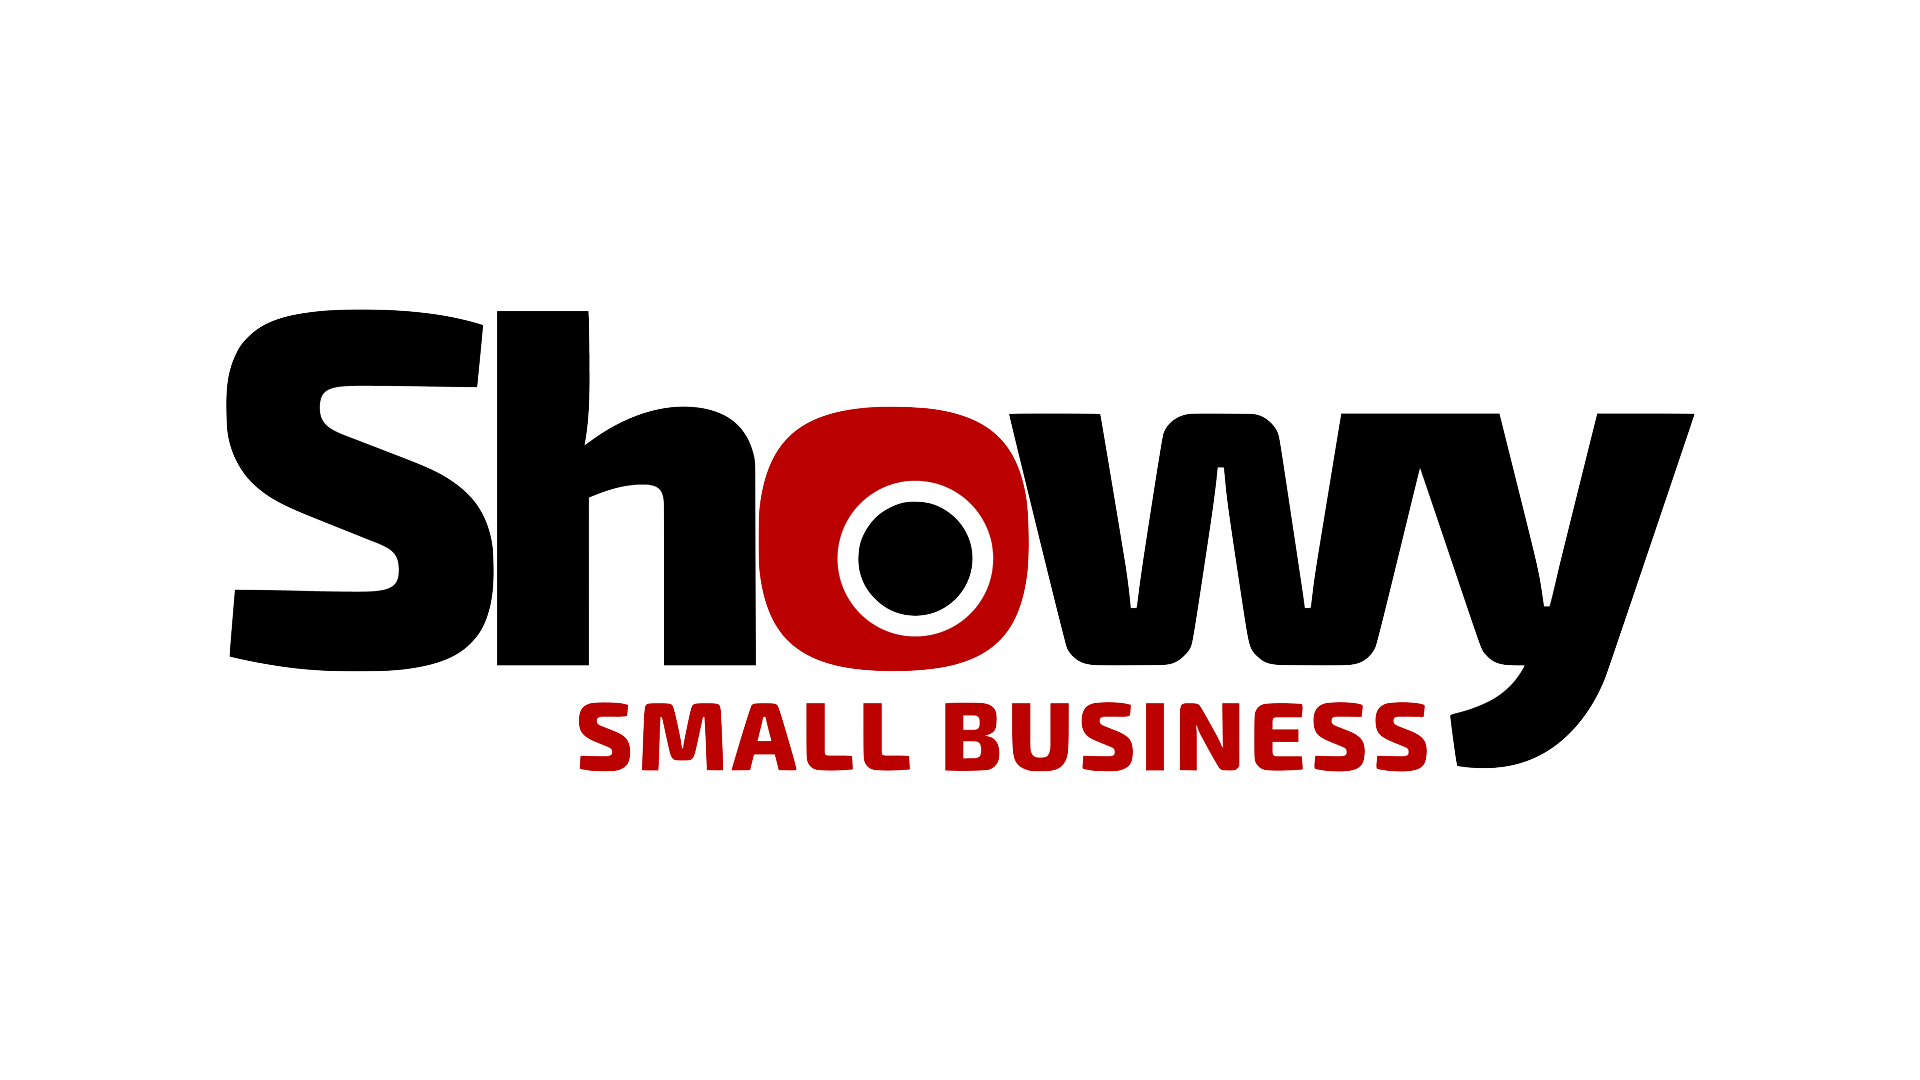 Showy smal business